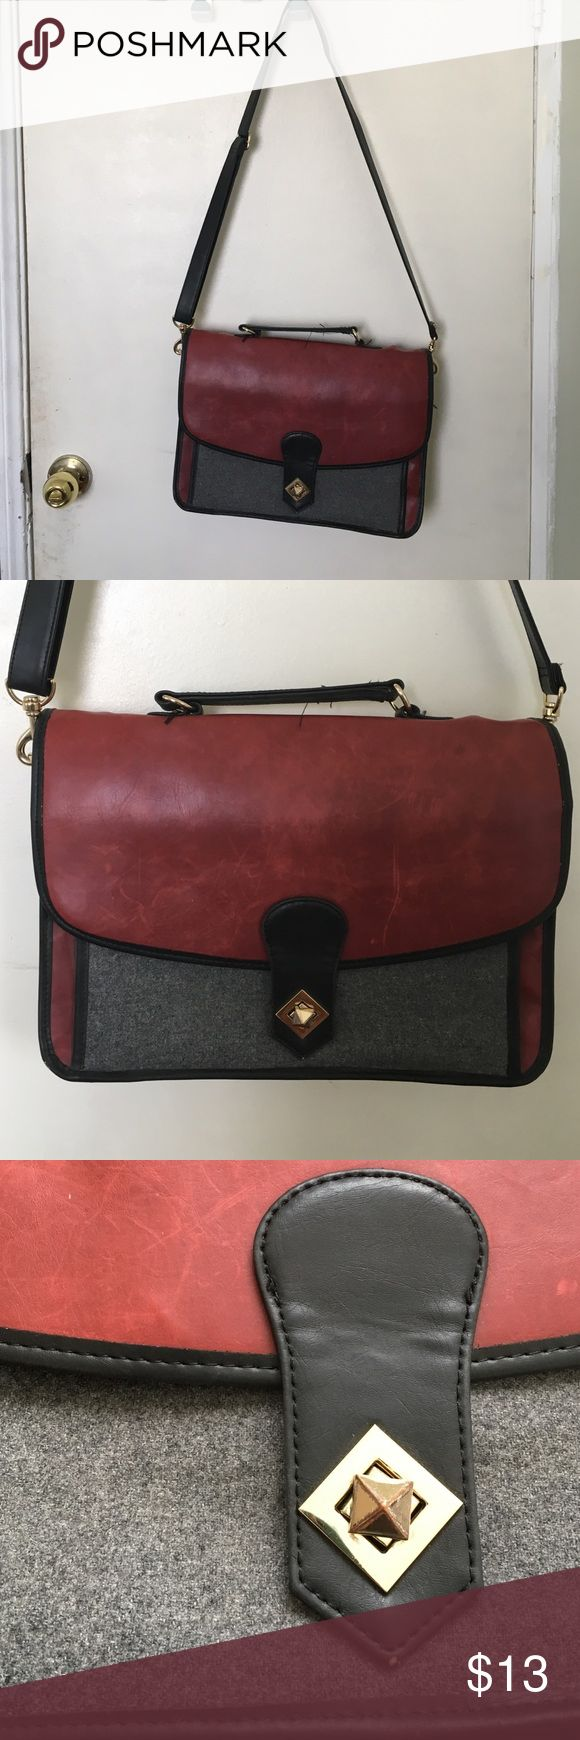 Urban Outfitter Purse Vintage purse from Urban Outfitter. Buy on Ⓜ️ for less :) Urban Outfitters Bags